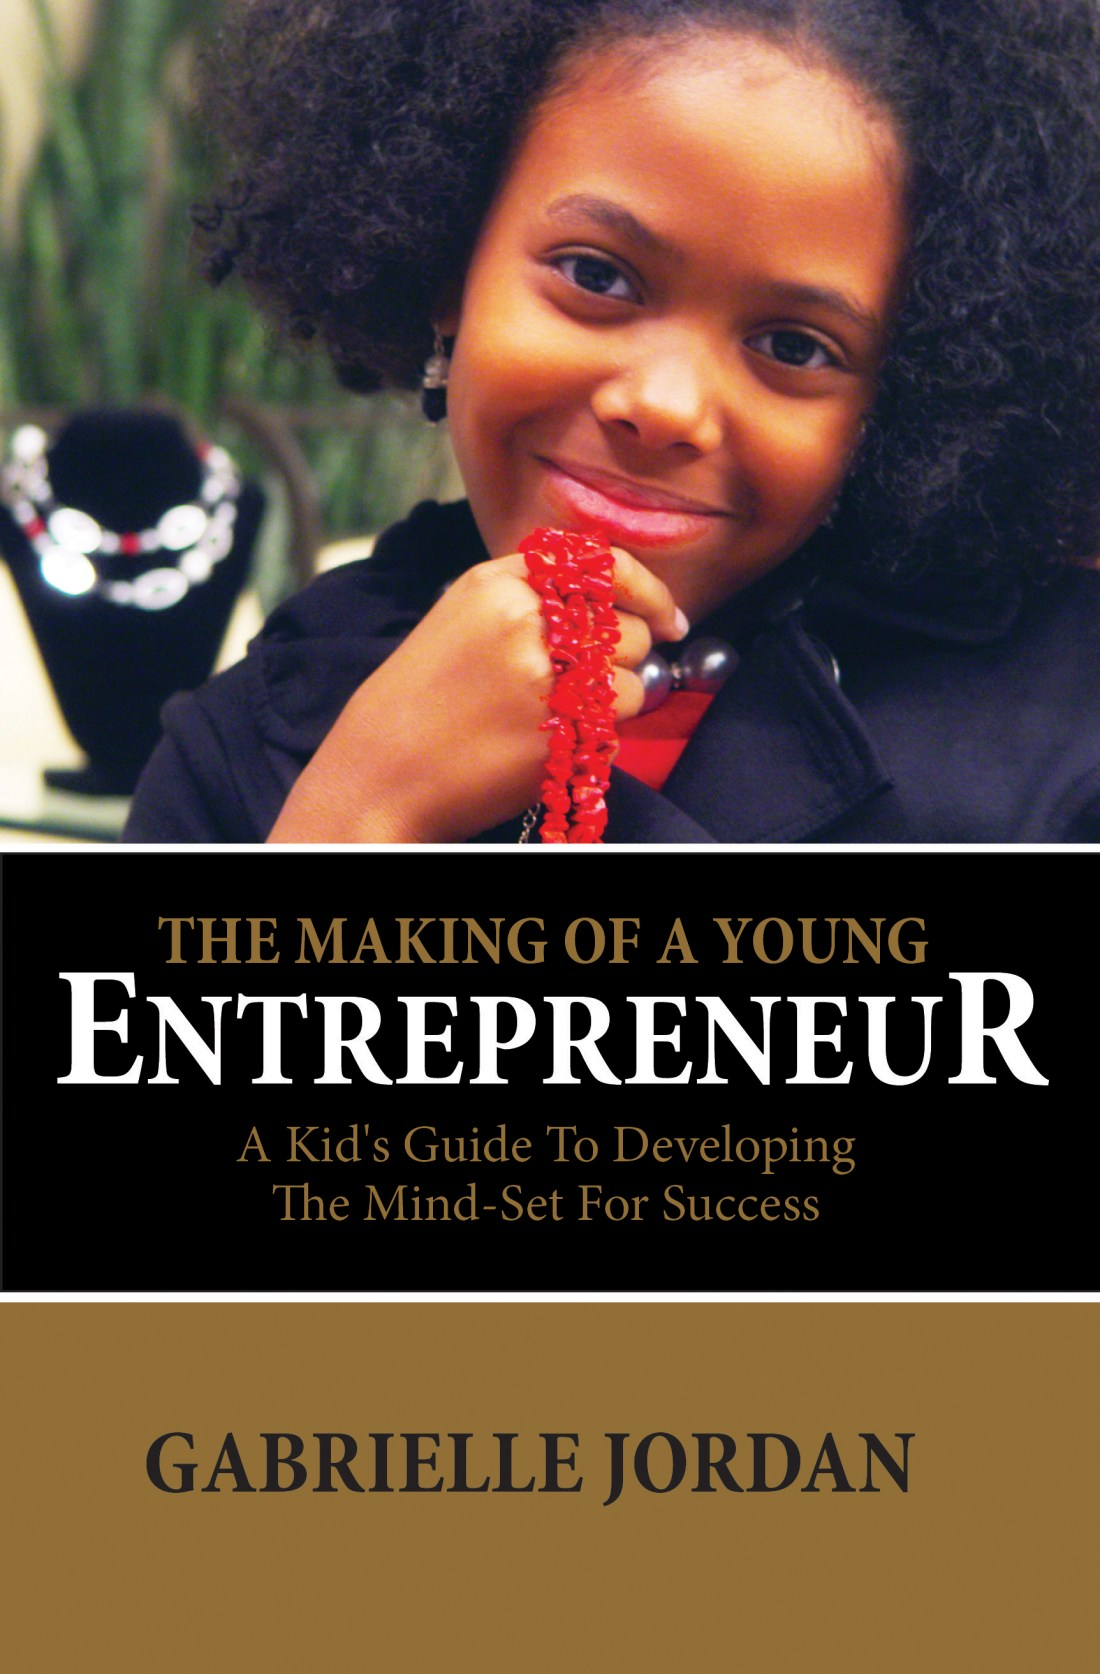 African American Entrepreneur, #BuyBlack, Blacks in Technology, Gabrielle Jordan, The Making of a Young Entrepreneur: A Kid's Guide to Developing the Mindset Success, KOLUMN Magazine, KOLUMN, KINDR'D Magazine, KINDR'D